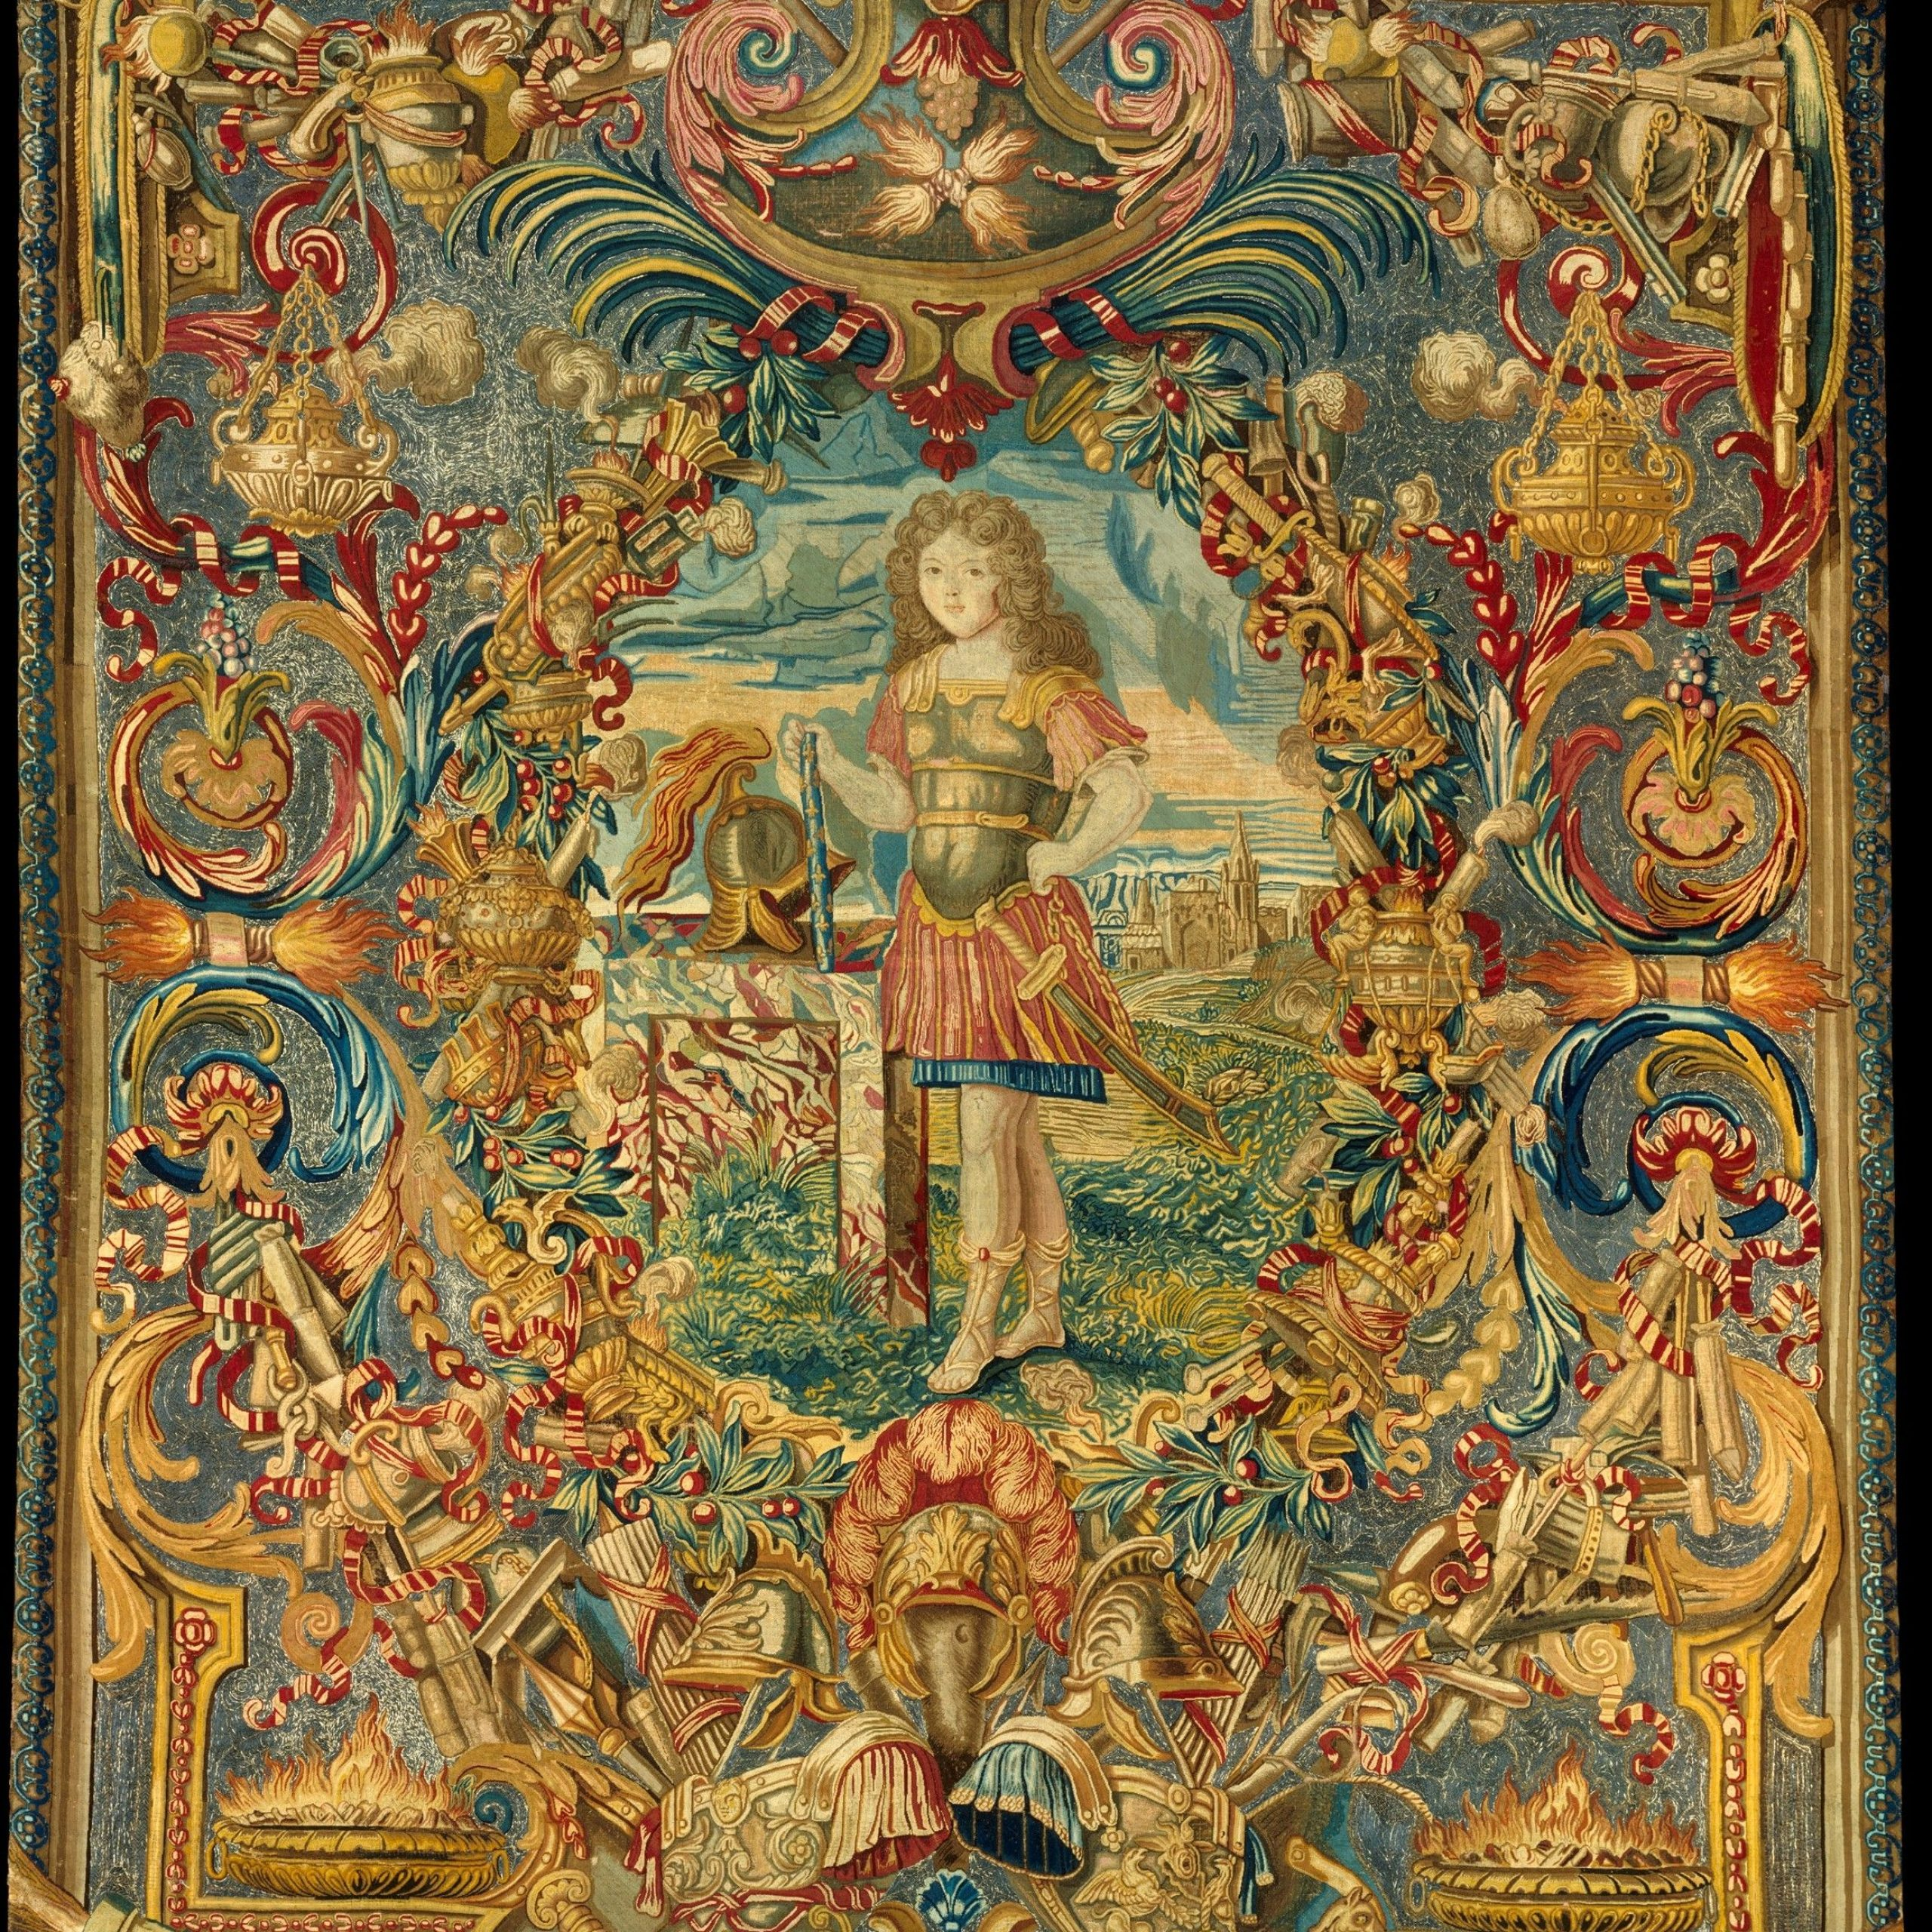 100+ Tapestry Ideas | Tapestry, Art, Medieval Tapestry For Most Recent Blended Fabric Saint Joseph European Tapestries (View 17 of 20)